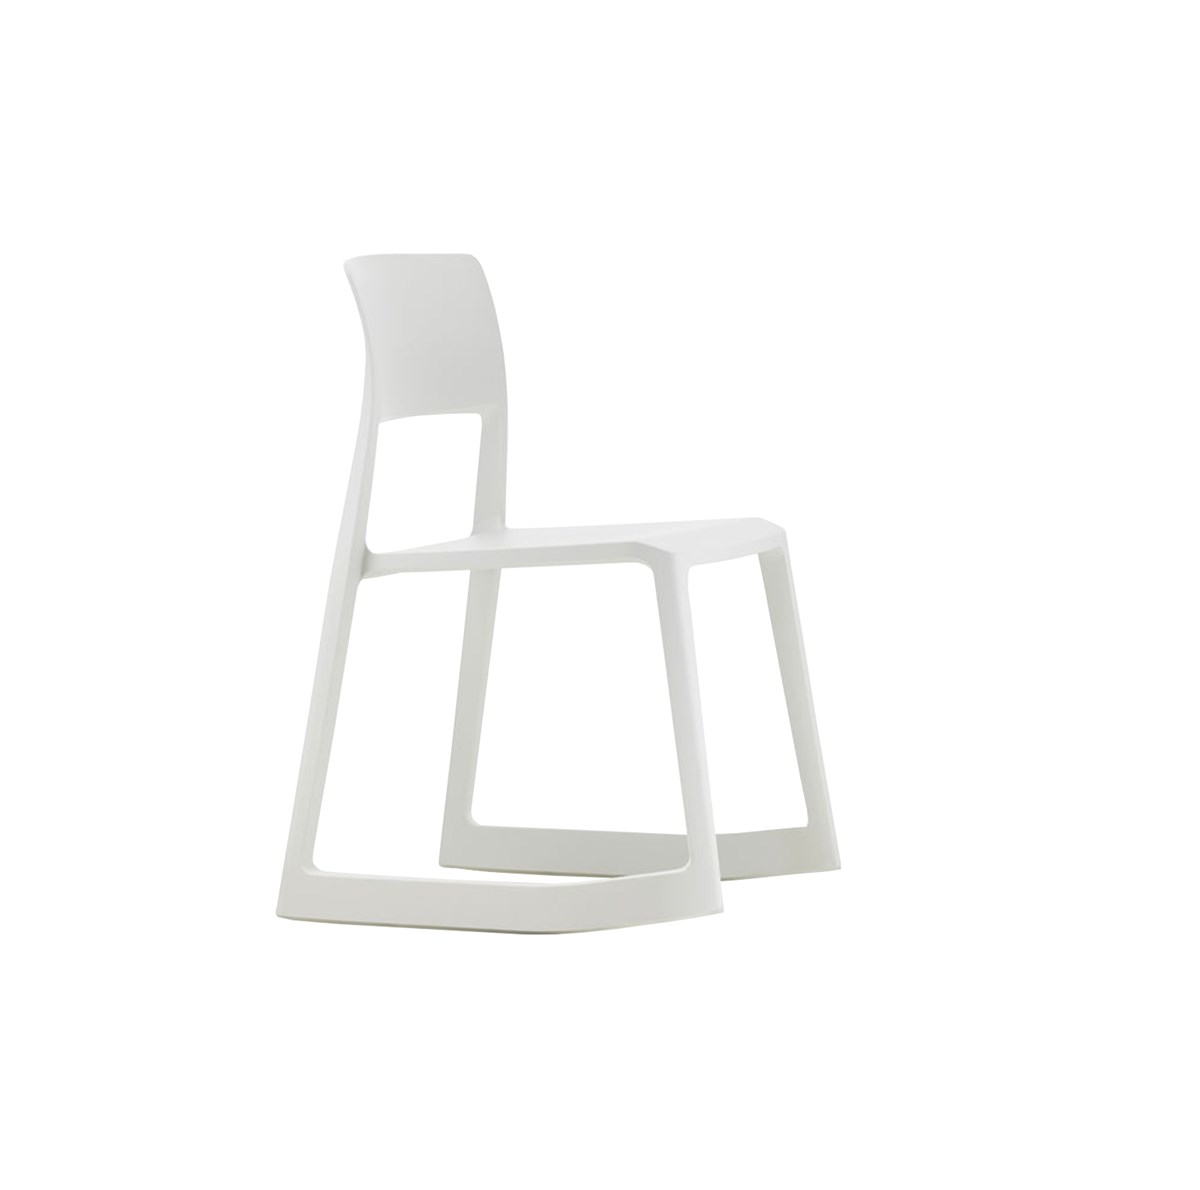 Vitra-Edward-Barber-and-Jay-Osgerby-Tipton-Chairs-Matisse-1